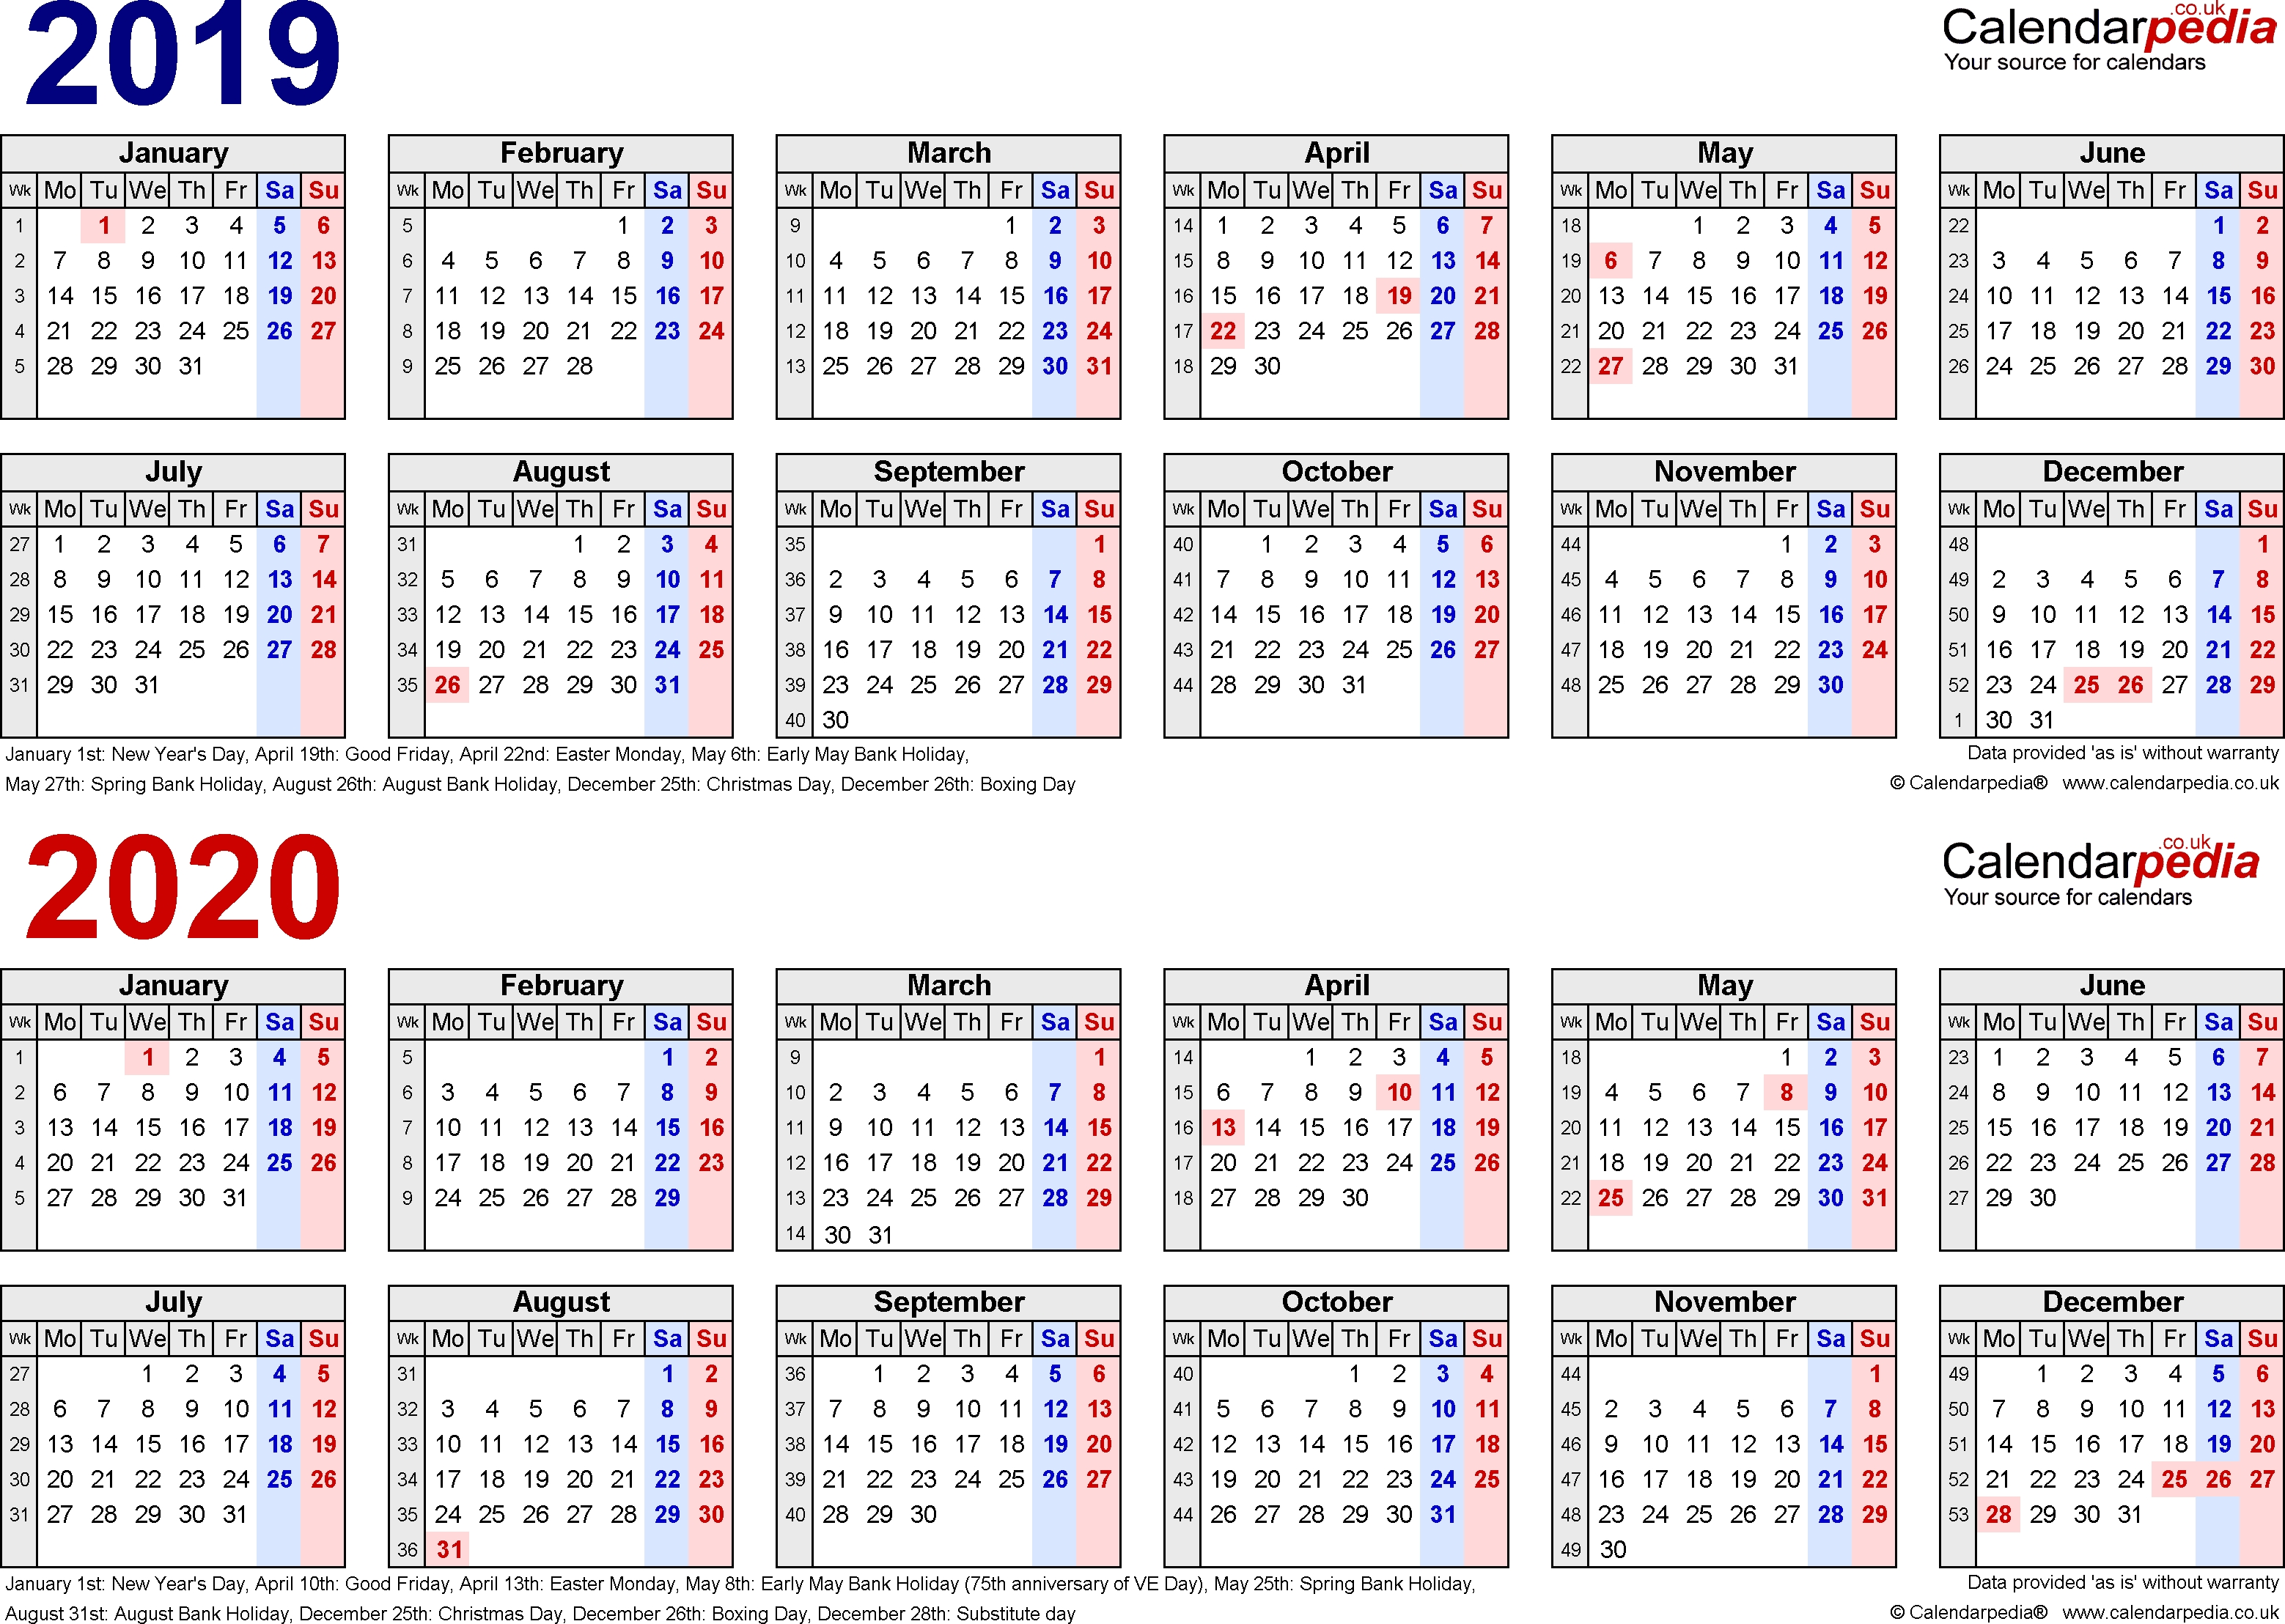 Two Year Calendars For 2019 & 2020 (Uk) For Pdf-Europe Holidays 2020 Calendar